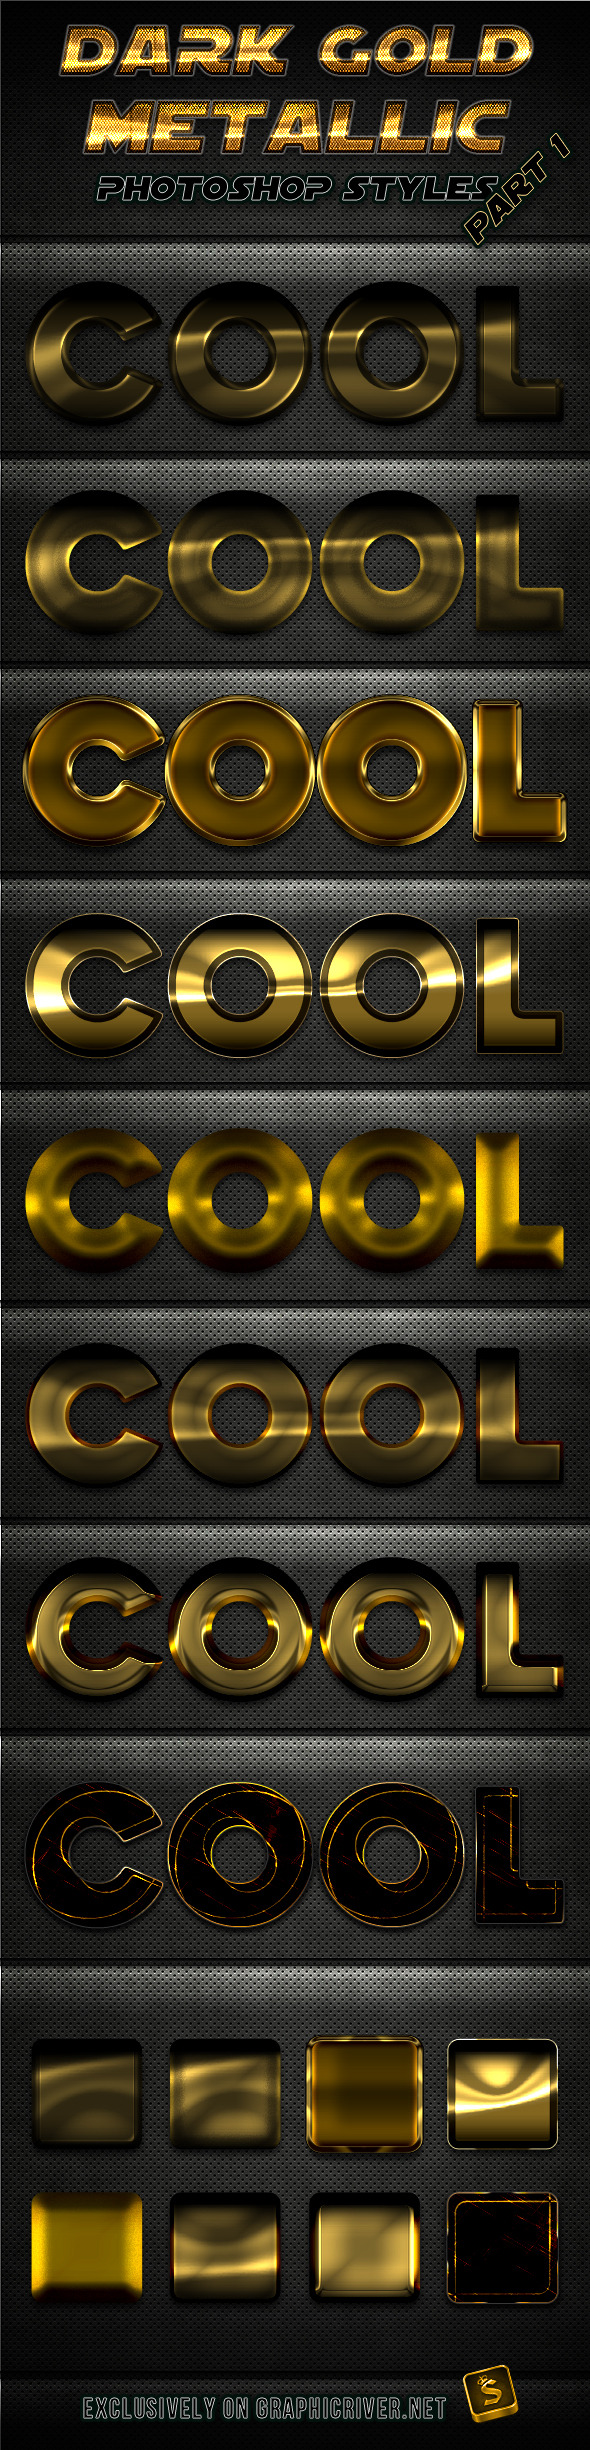 Dark Gold Metallic Photoshop Styles - Part 1 - Text Effects Styles